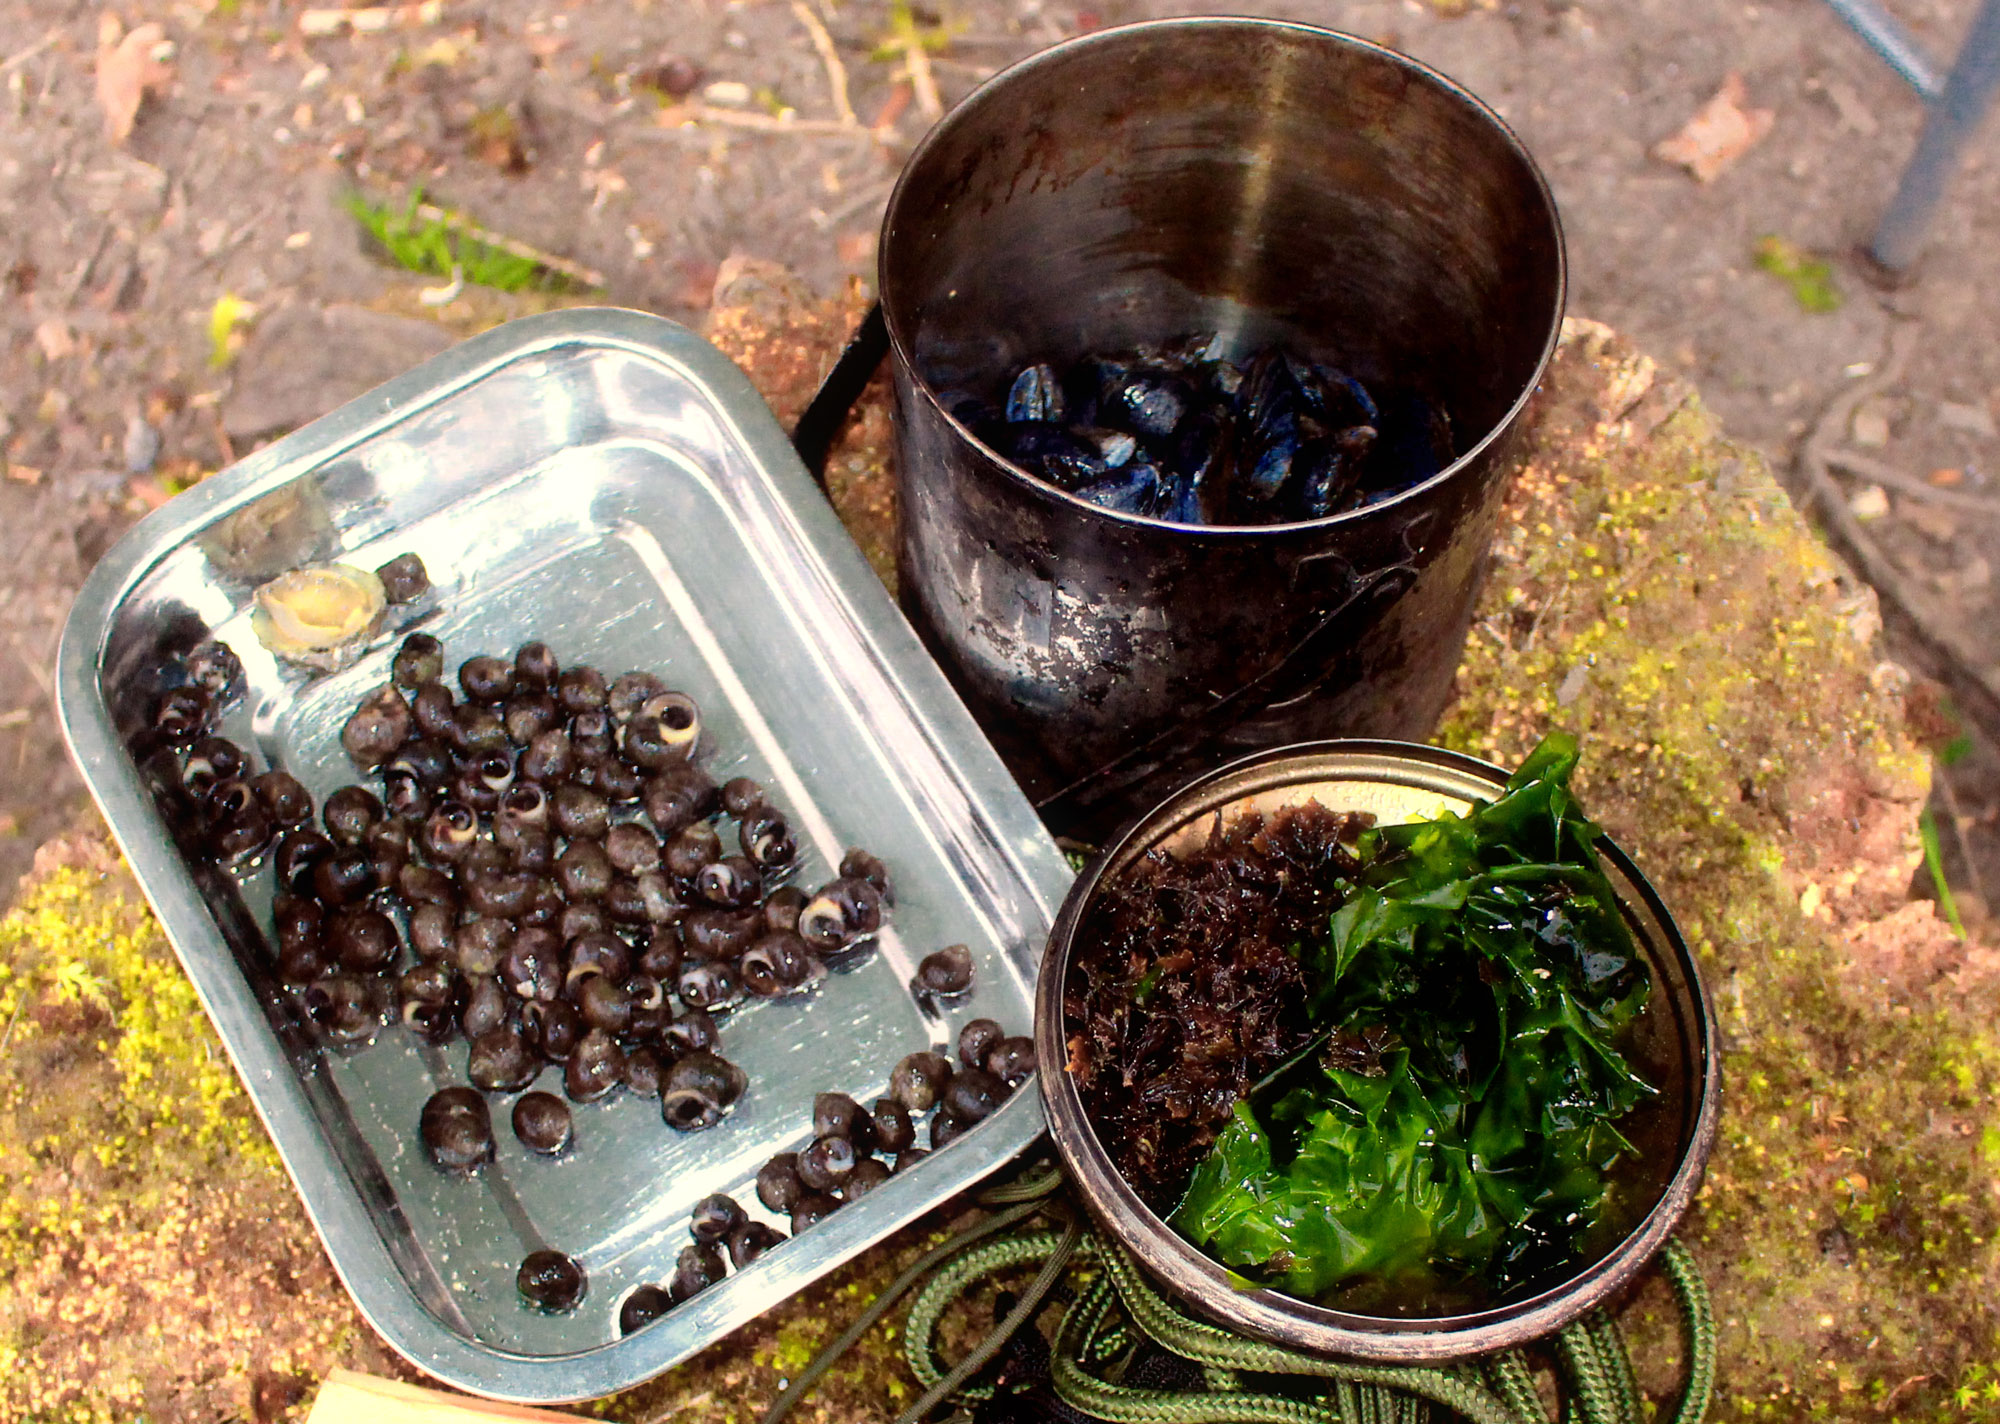 Periwinkles, mussels, Pepper Dulse, and sea lettuce.